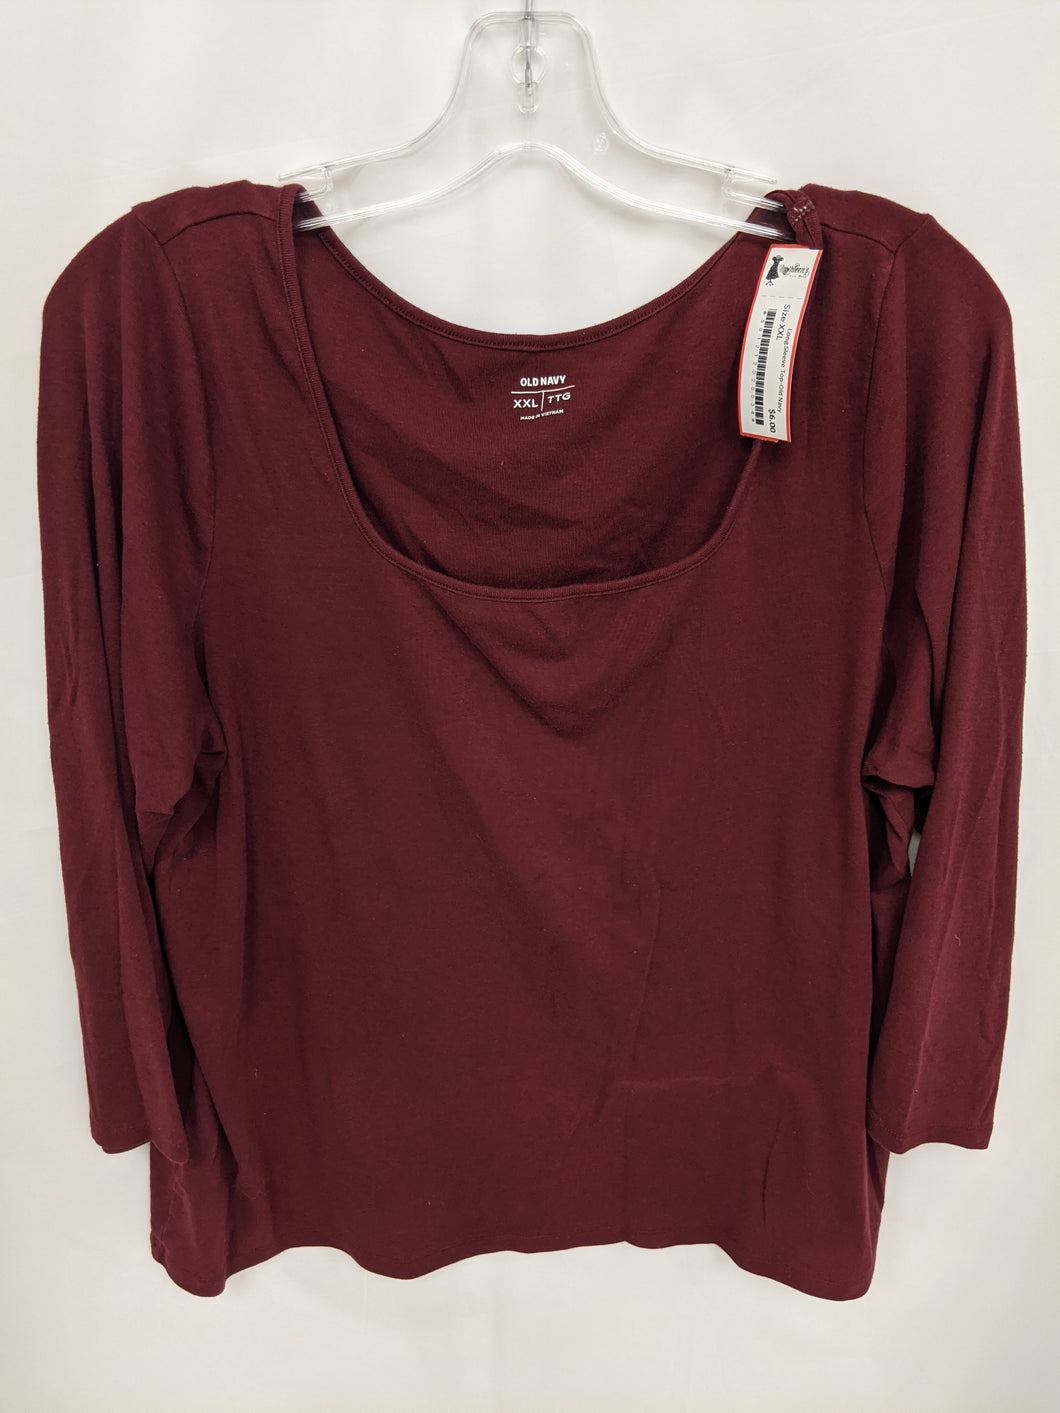 Long Sleeve Top - Size XXL